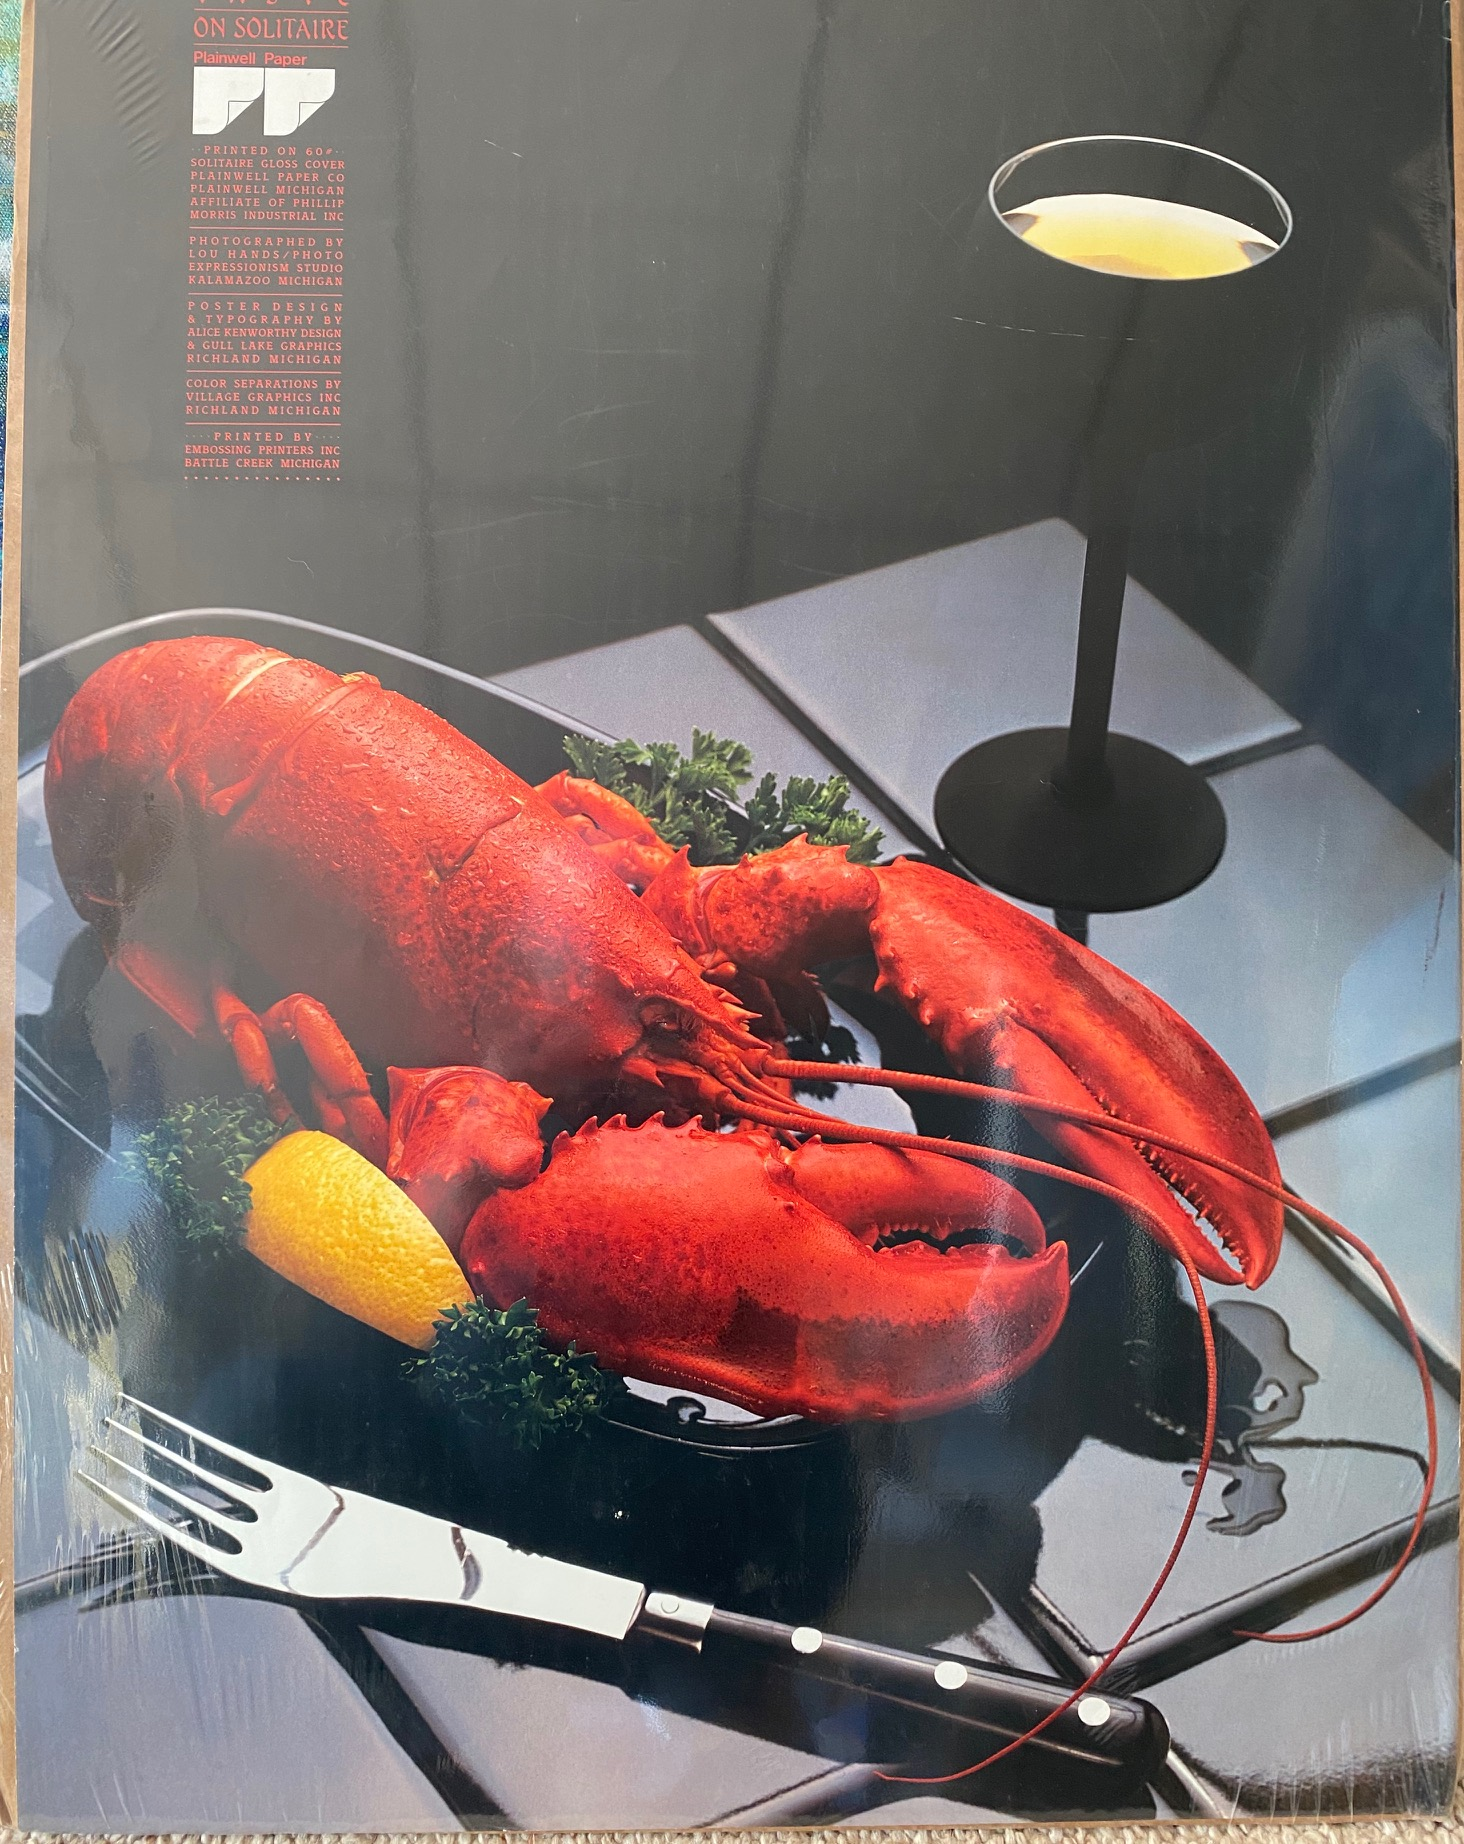 Lobster & Wine by Lou Hands - Poster ...